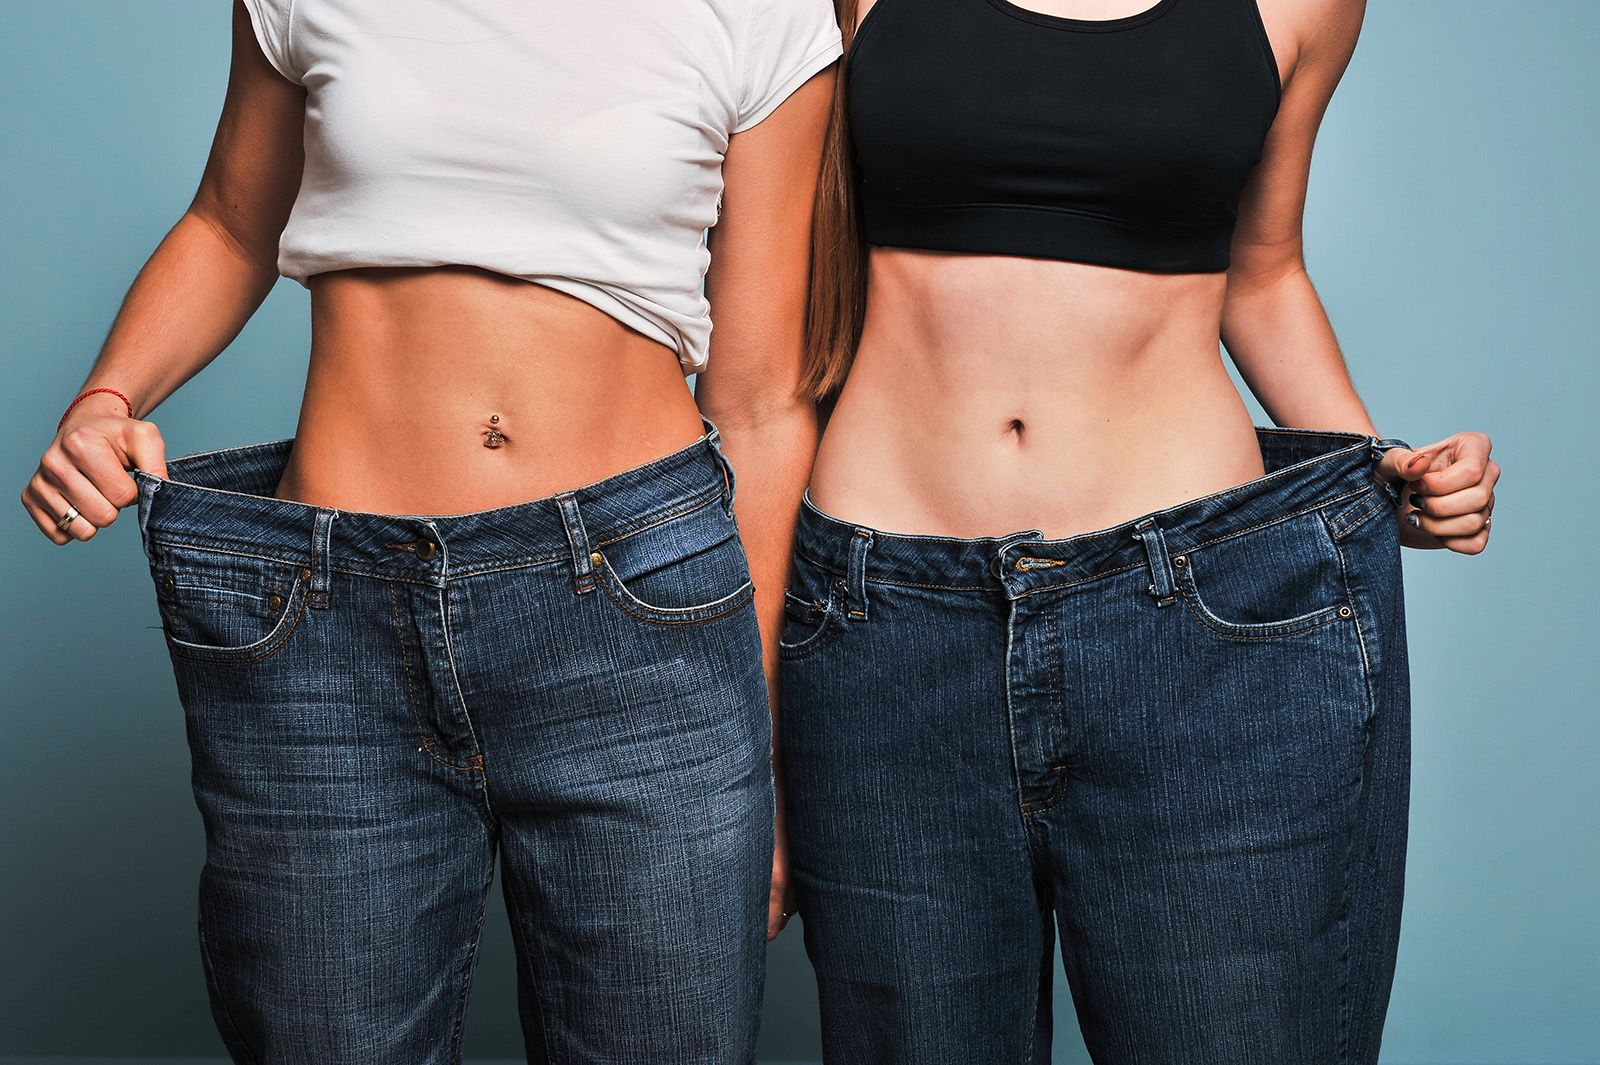 photo of two women standing in their old jeans after weight loss surgery